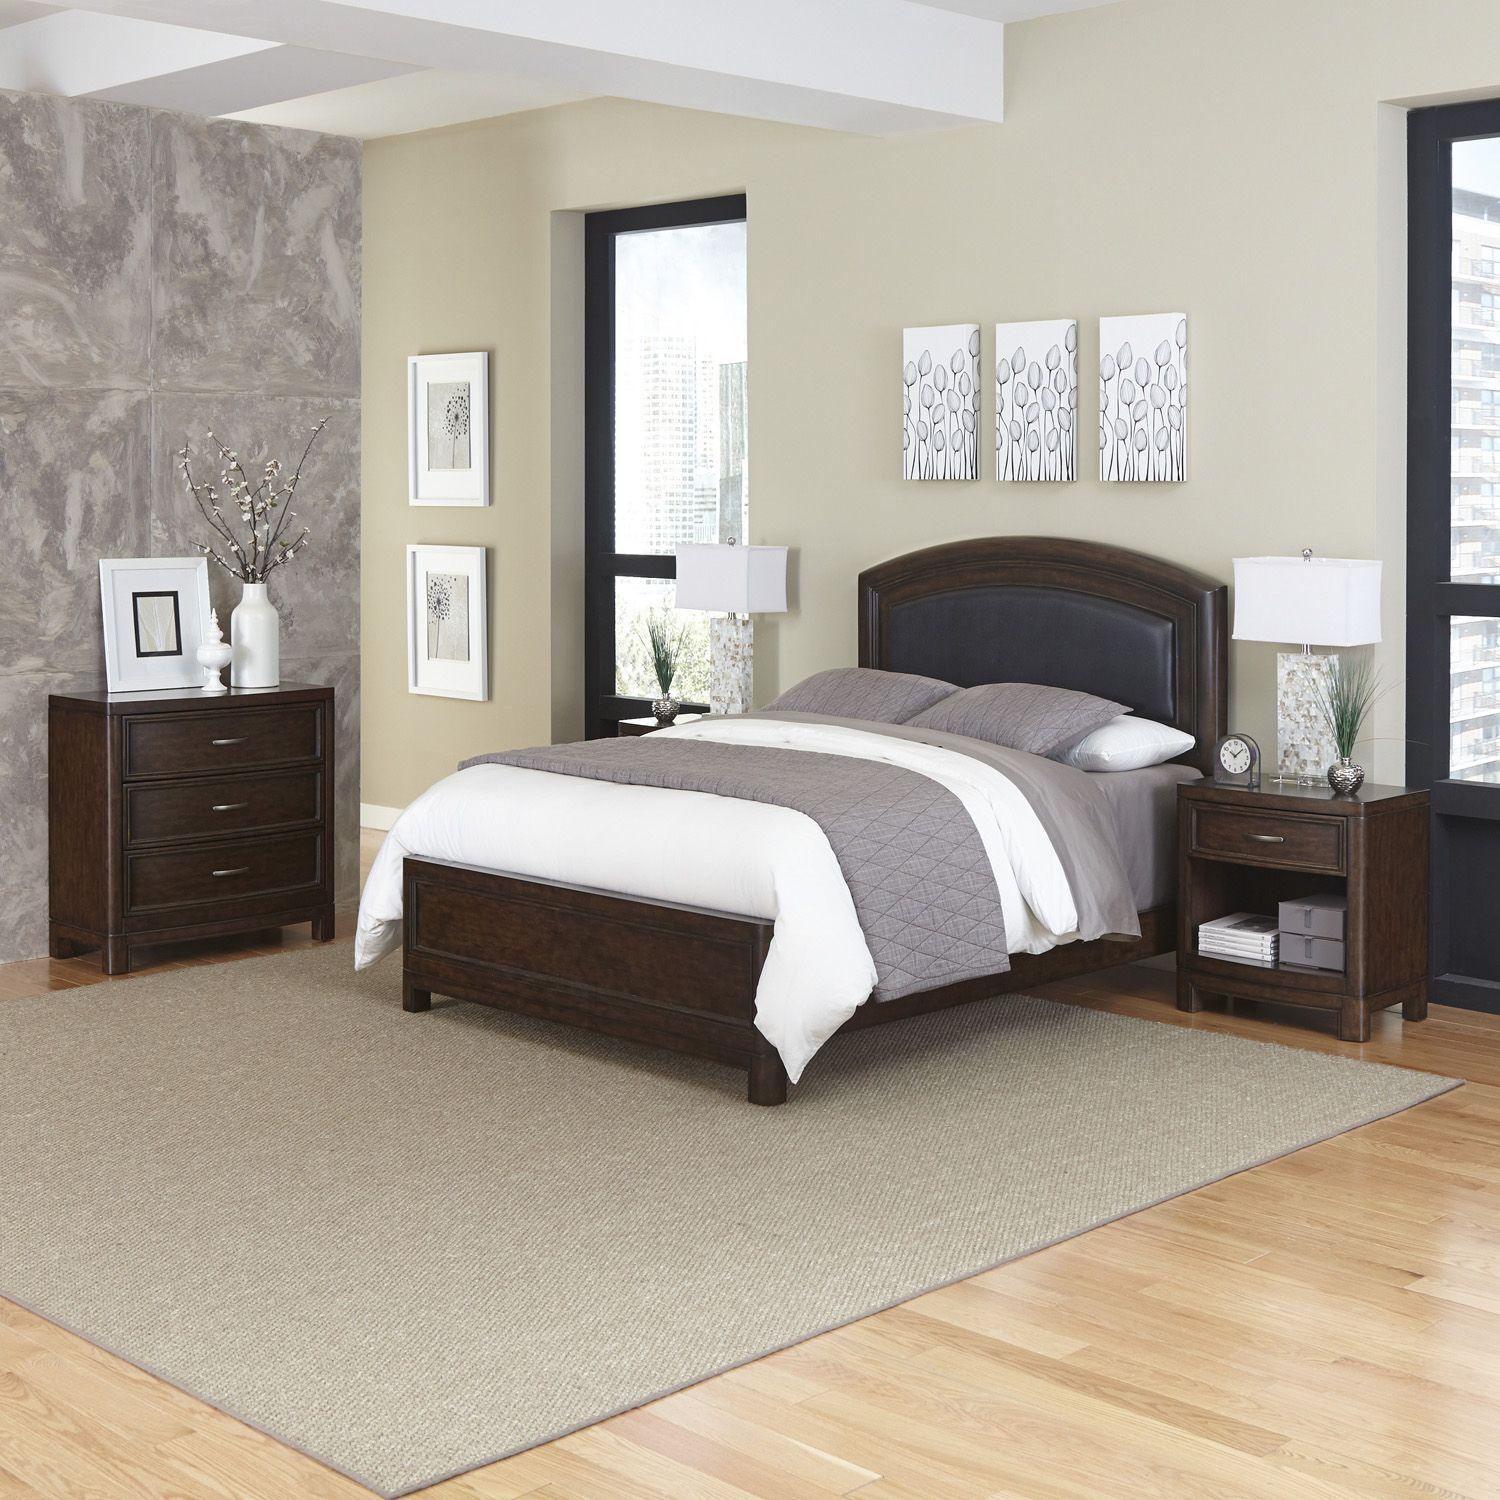 Inspirational Home Styles Crescent Hill piece Leather Upholstered Bed Two Nightstands and Drawer